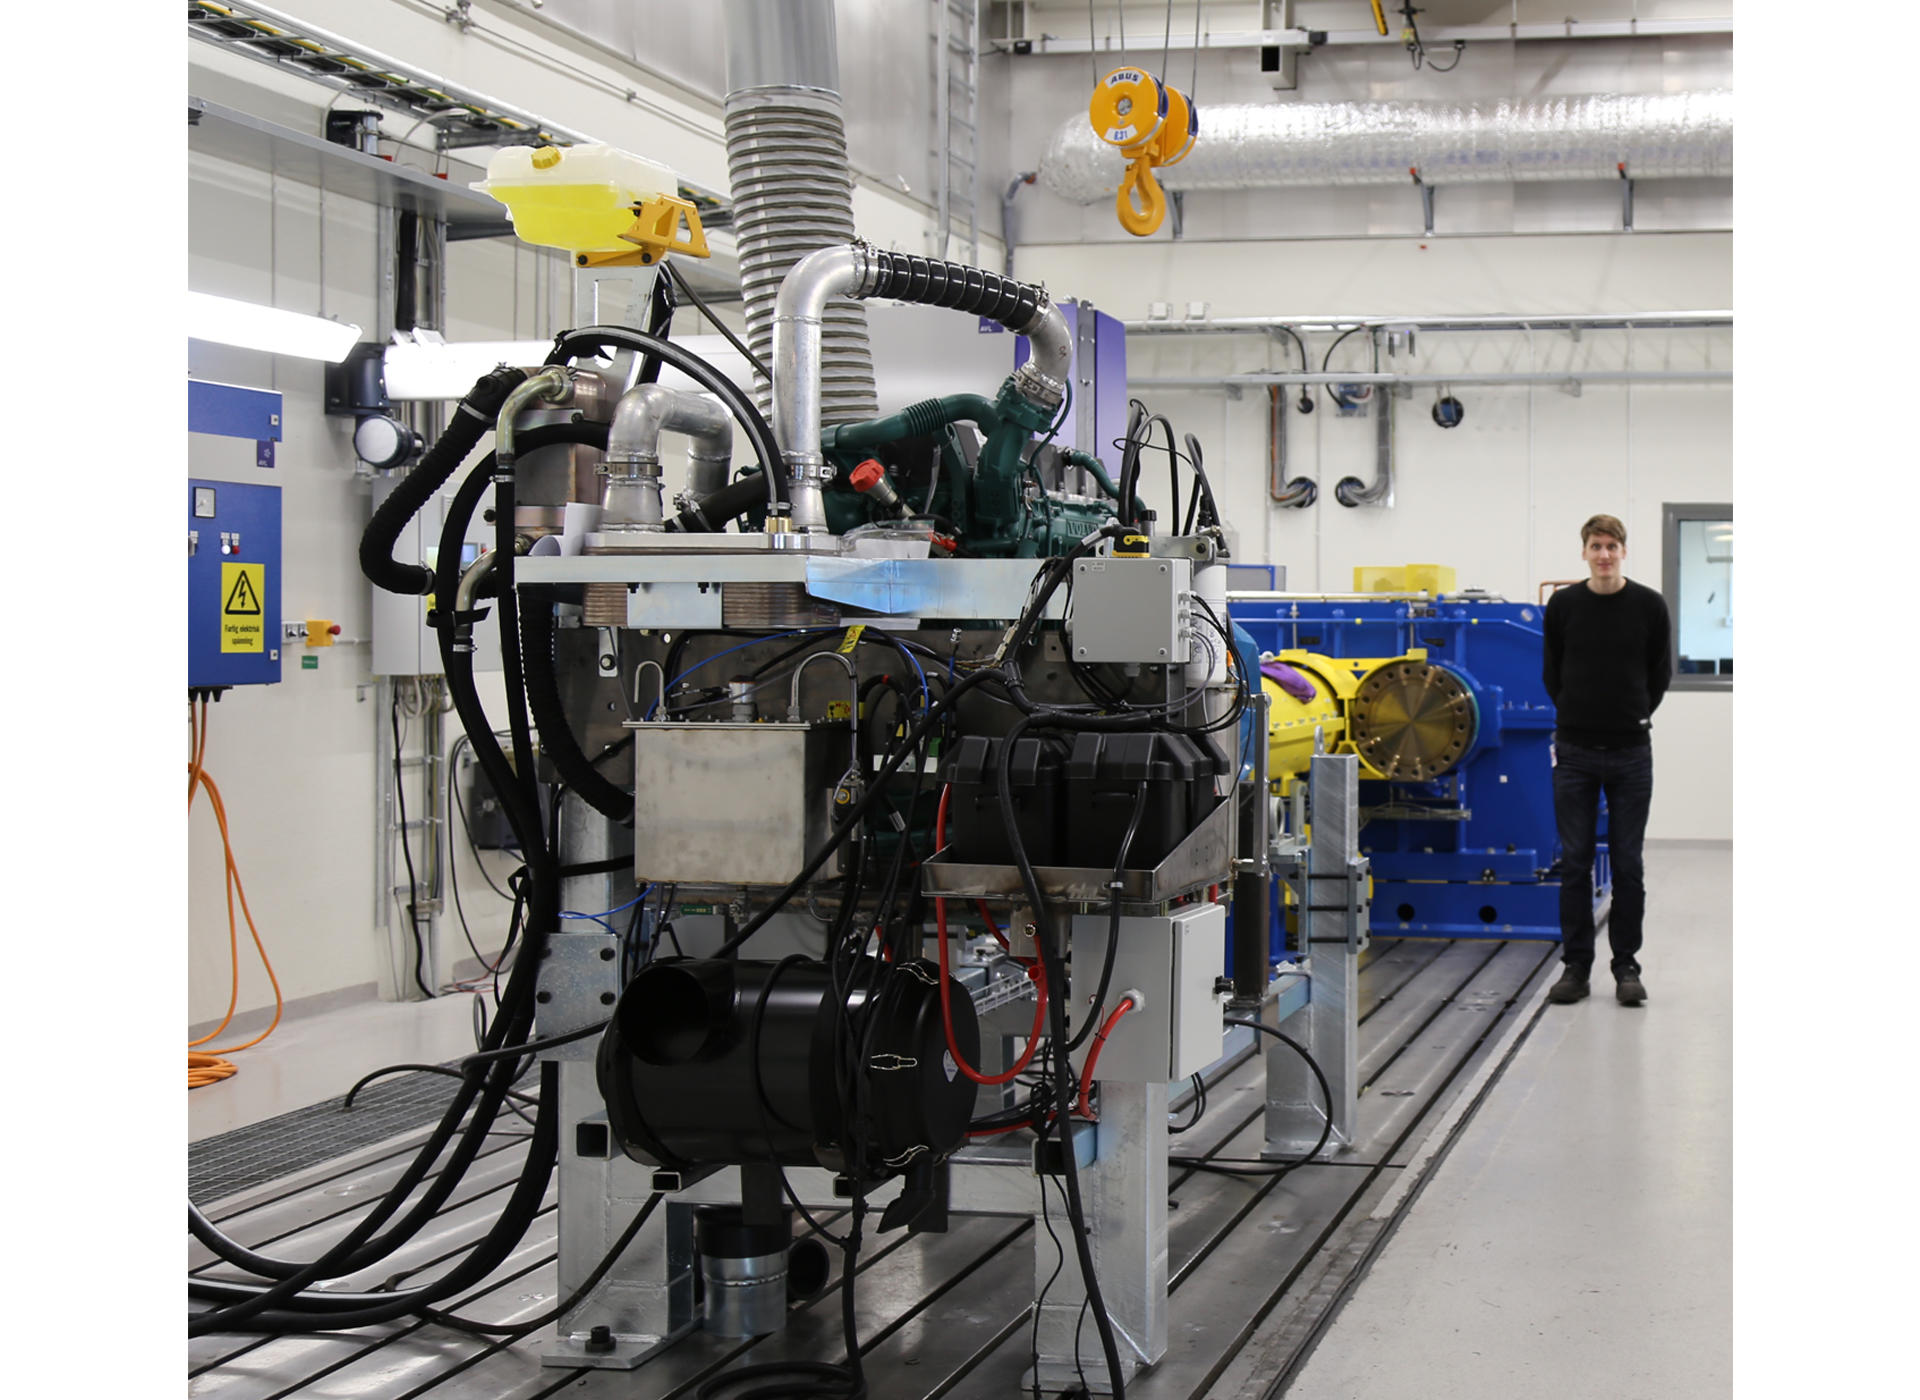 volvo-ce-inaugurates-unique-drivline-test-facility-01-1920x1400